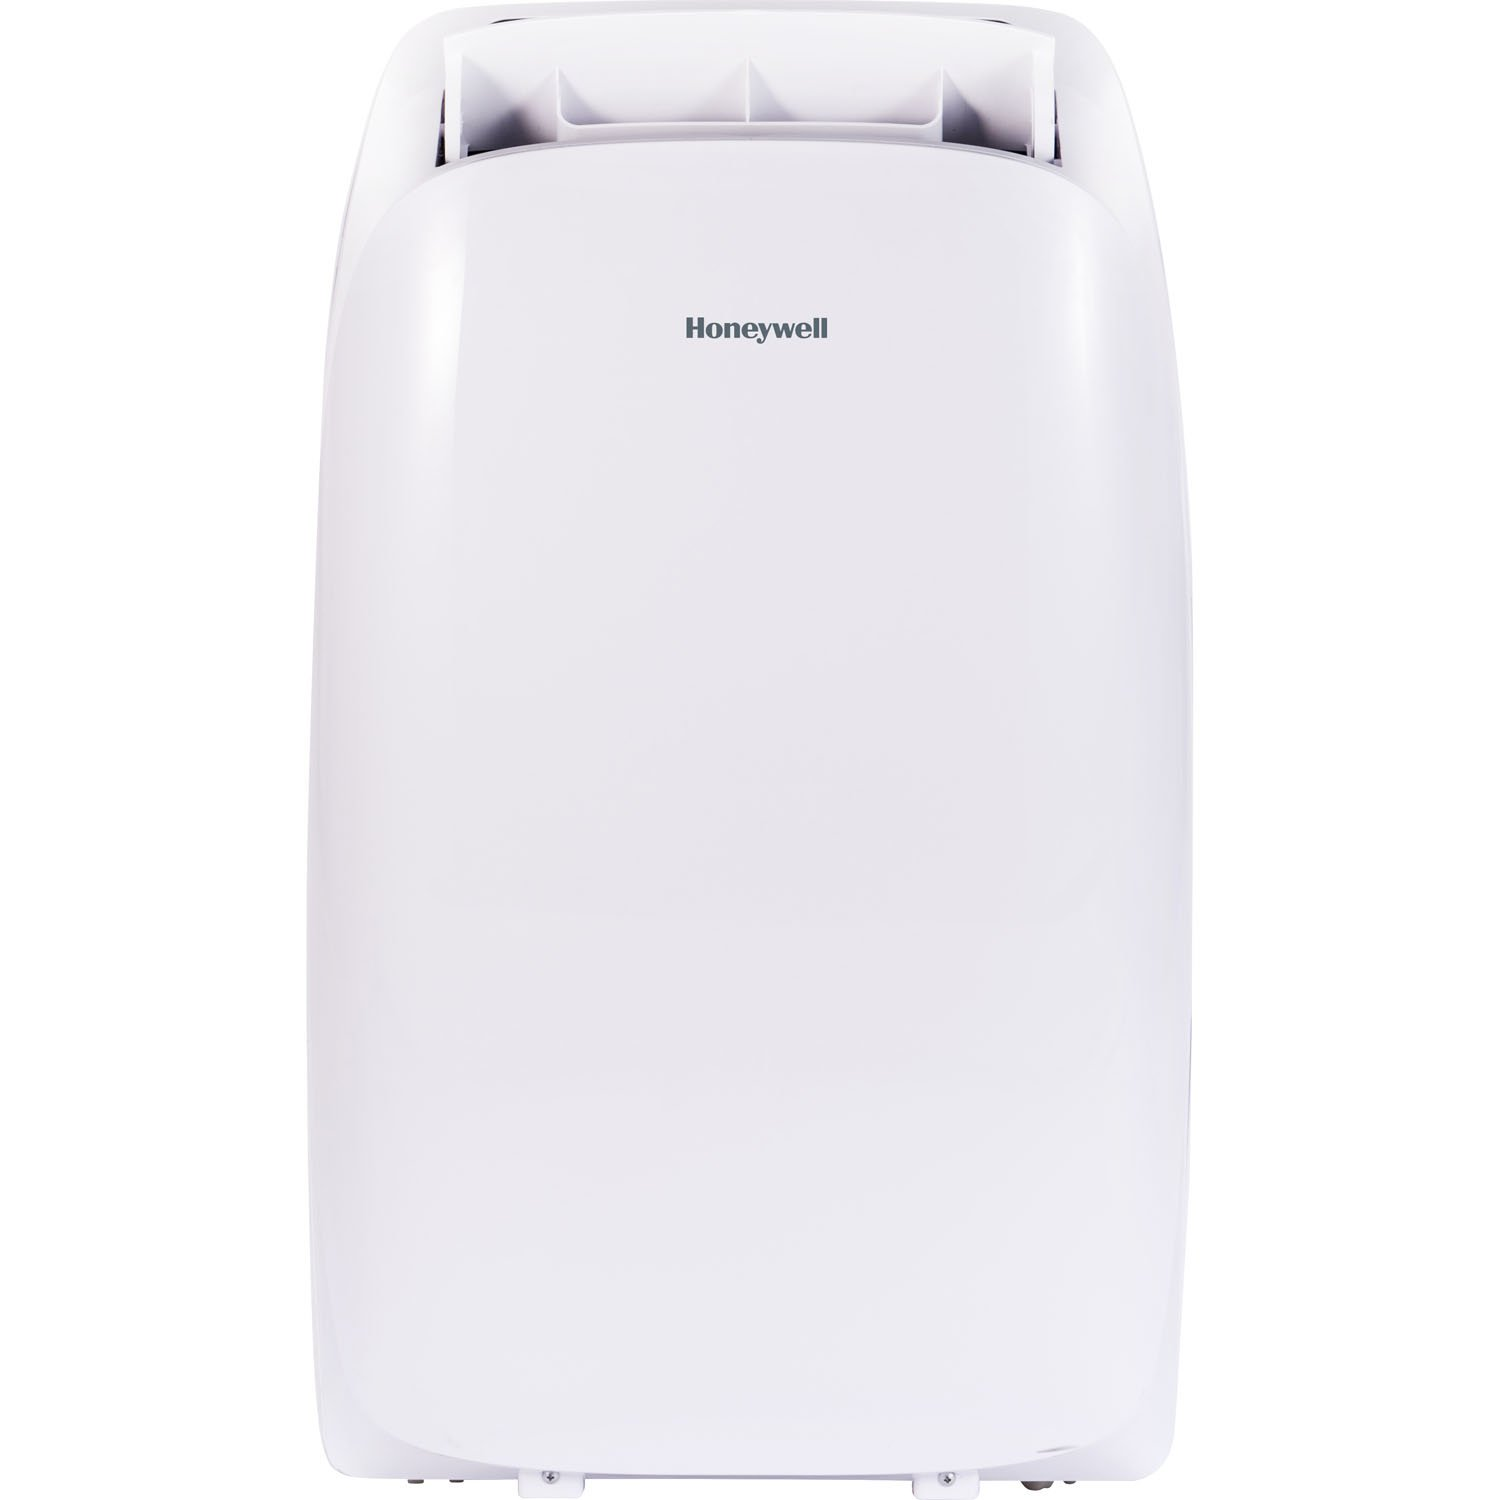 Honeywell Contempo Series Portable Air Conditioner, Dehumidifier & Fan with Dual Filtration System for Rooms Up To 450 Sq. Ft, Polished & Powerful (White)